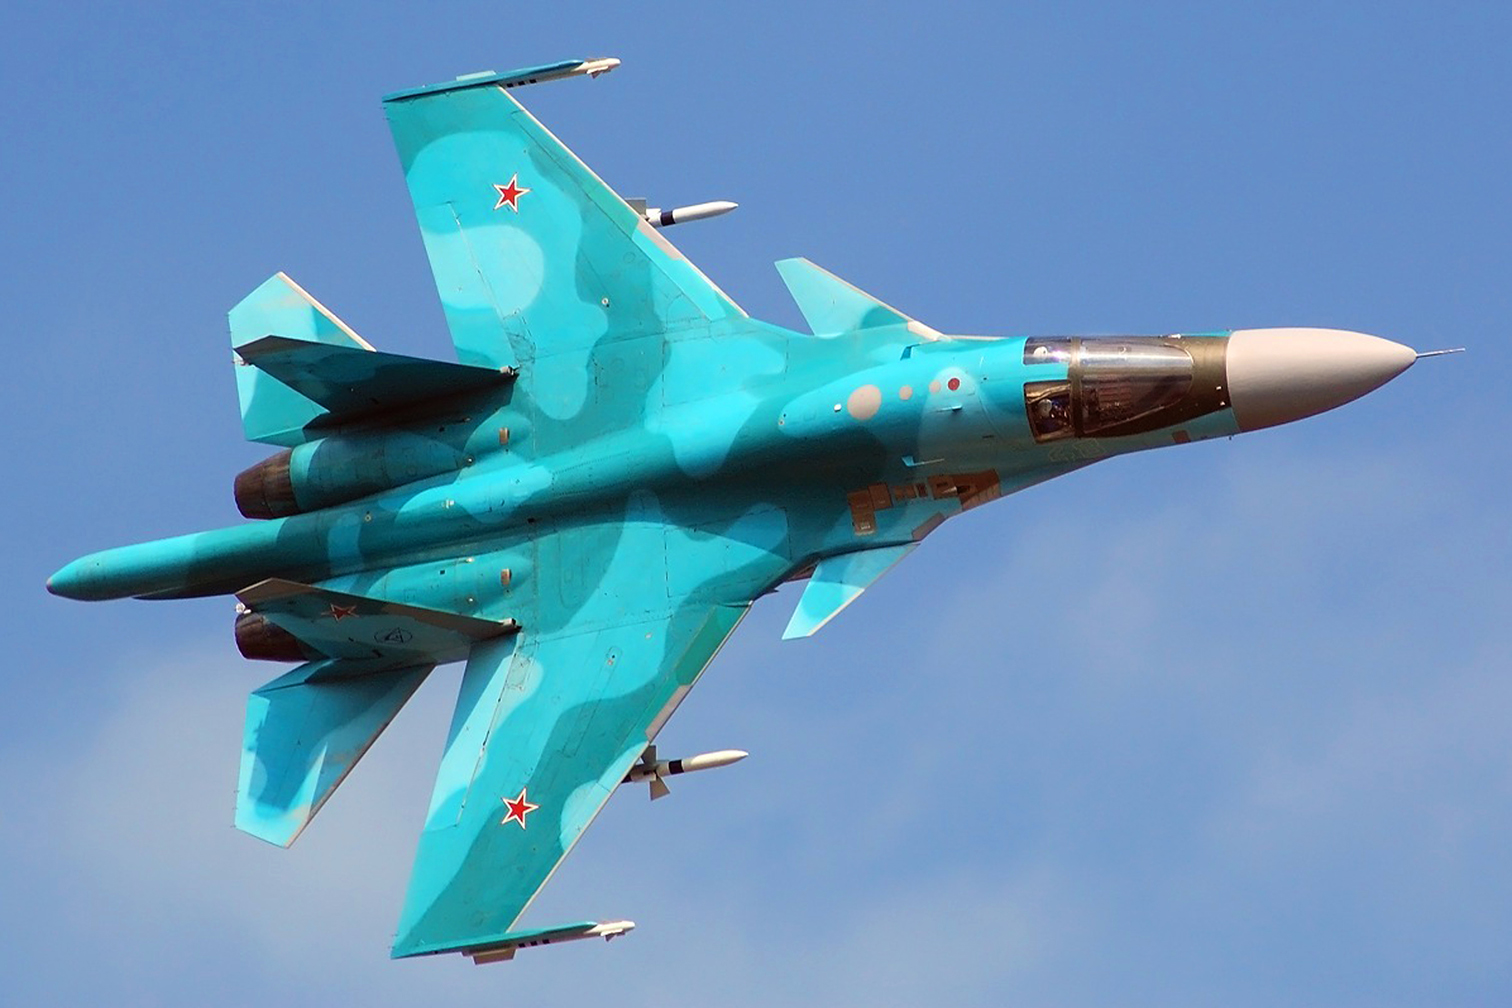 SUKHOI HANDED OVER ANOTHER BATCH OF SU-34 FRONTLINE BOMBERS TO THE ...